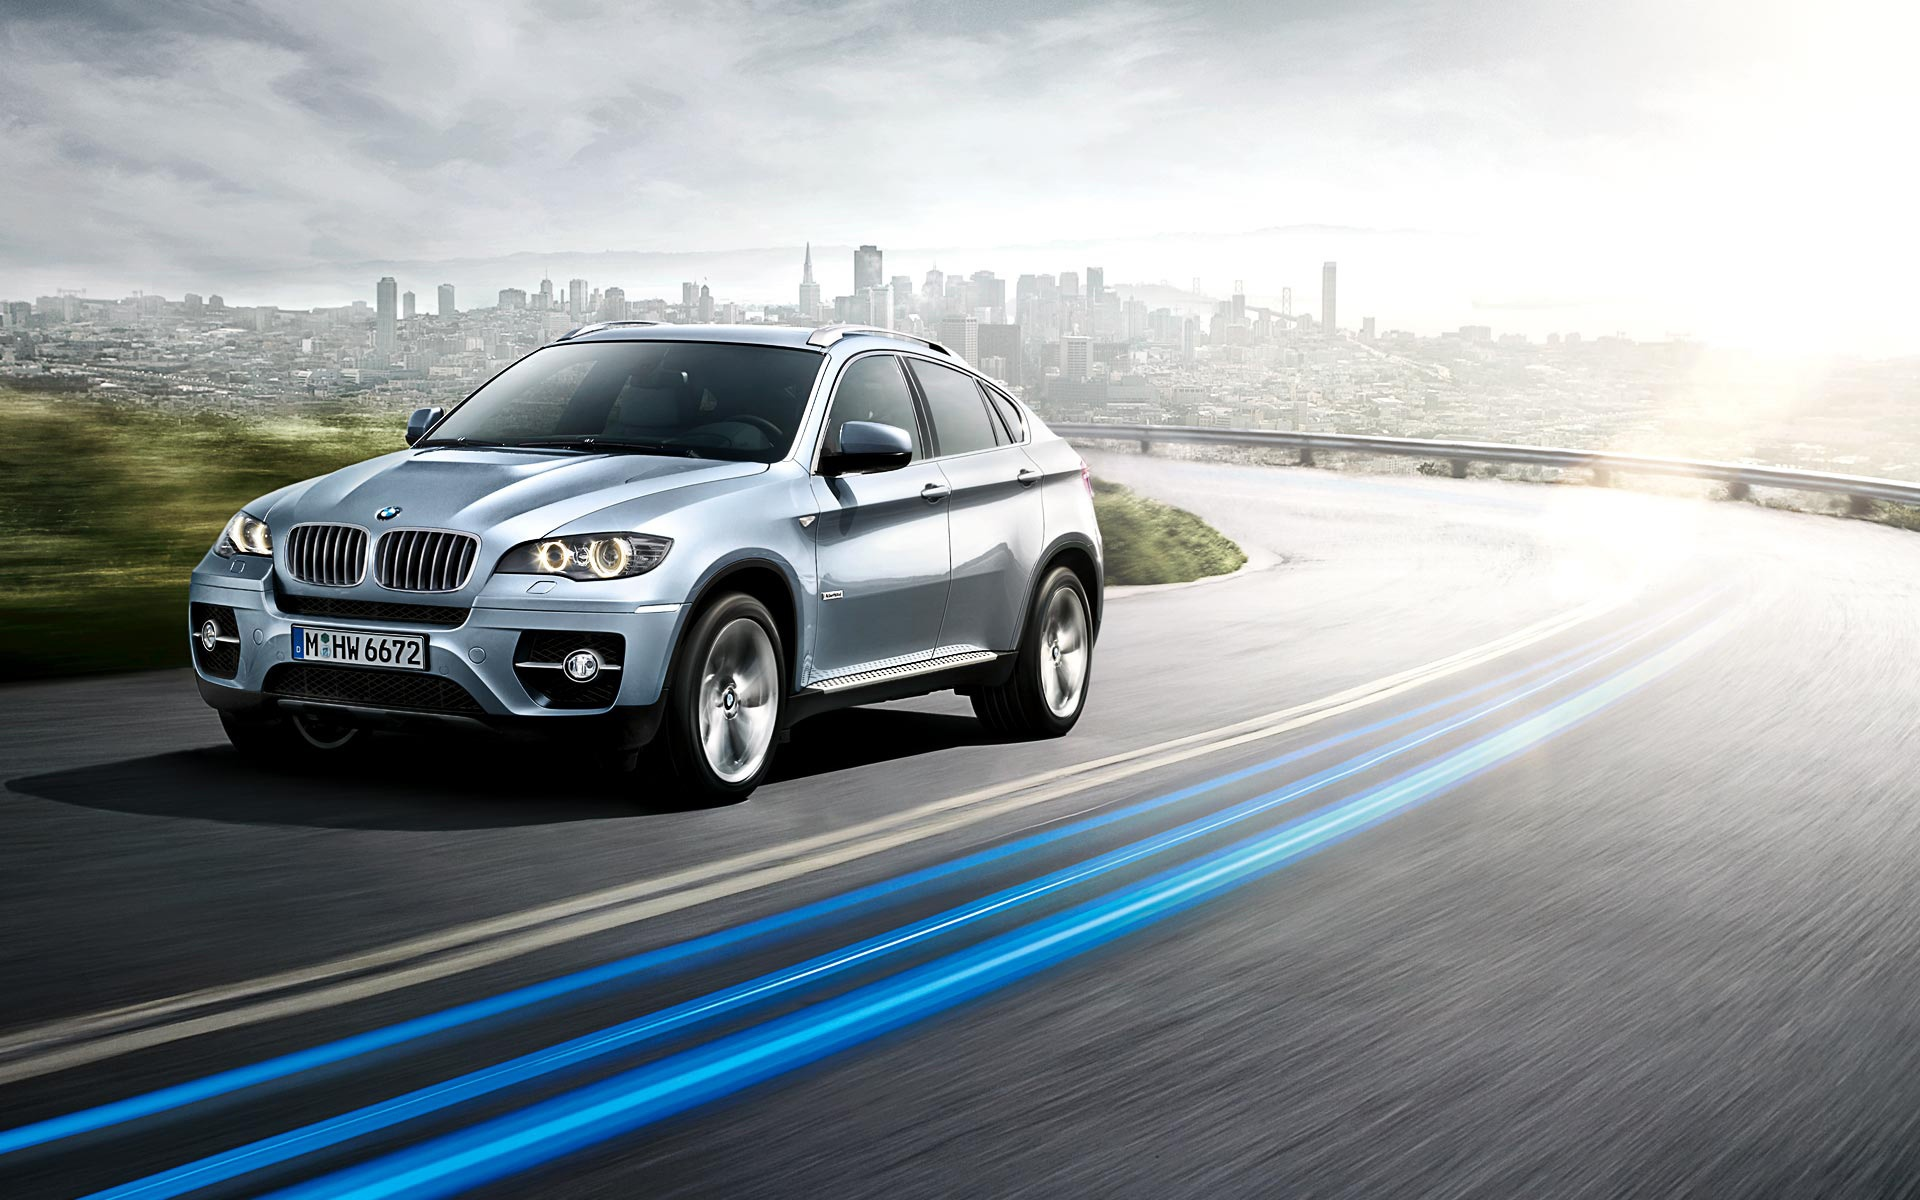 Bmw X6 Car Modified Wallpaper Luxury Best Bmw Wallpapers for Desktop Tablets In Hd for Download-523 Of Inspirational Bmw X6 Car Modified Wallpaper